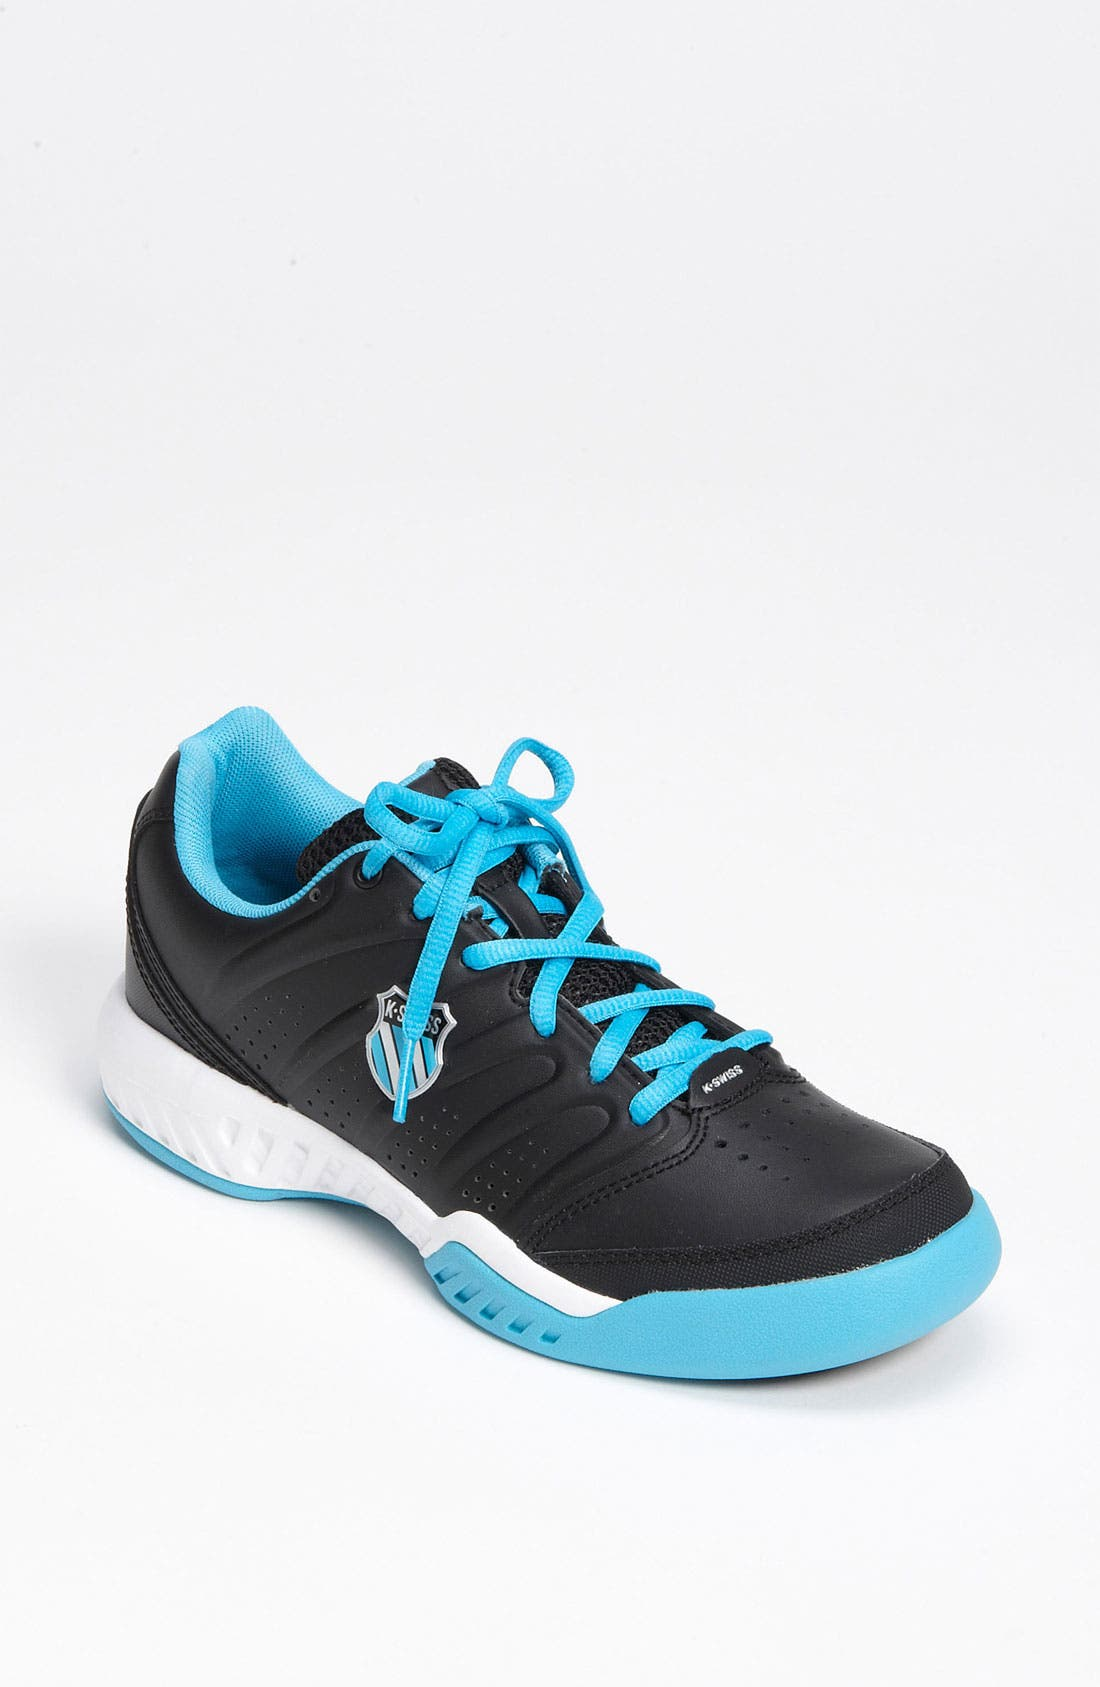 Alternate Image 1 Selected - K-Swiss 'Ultrascendor 11' Tennis Shoe (Women)